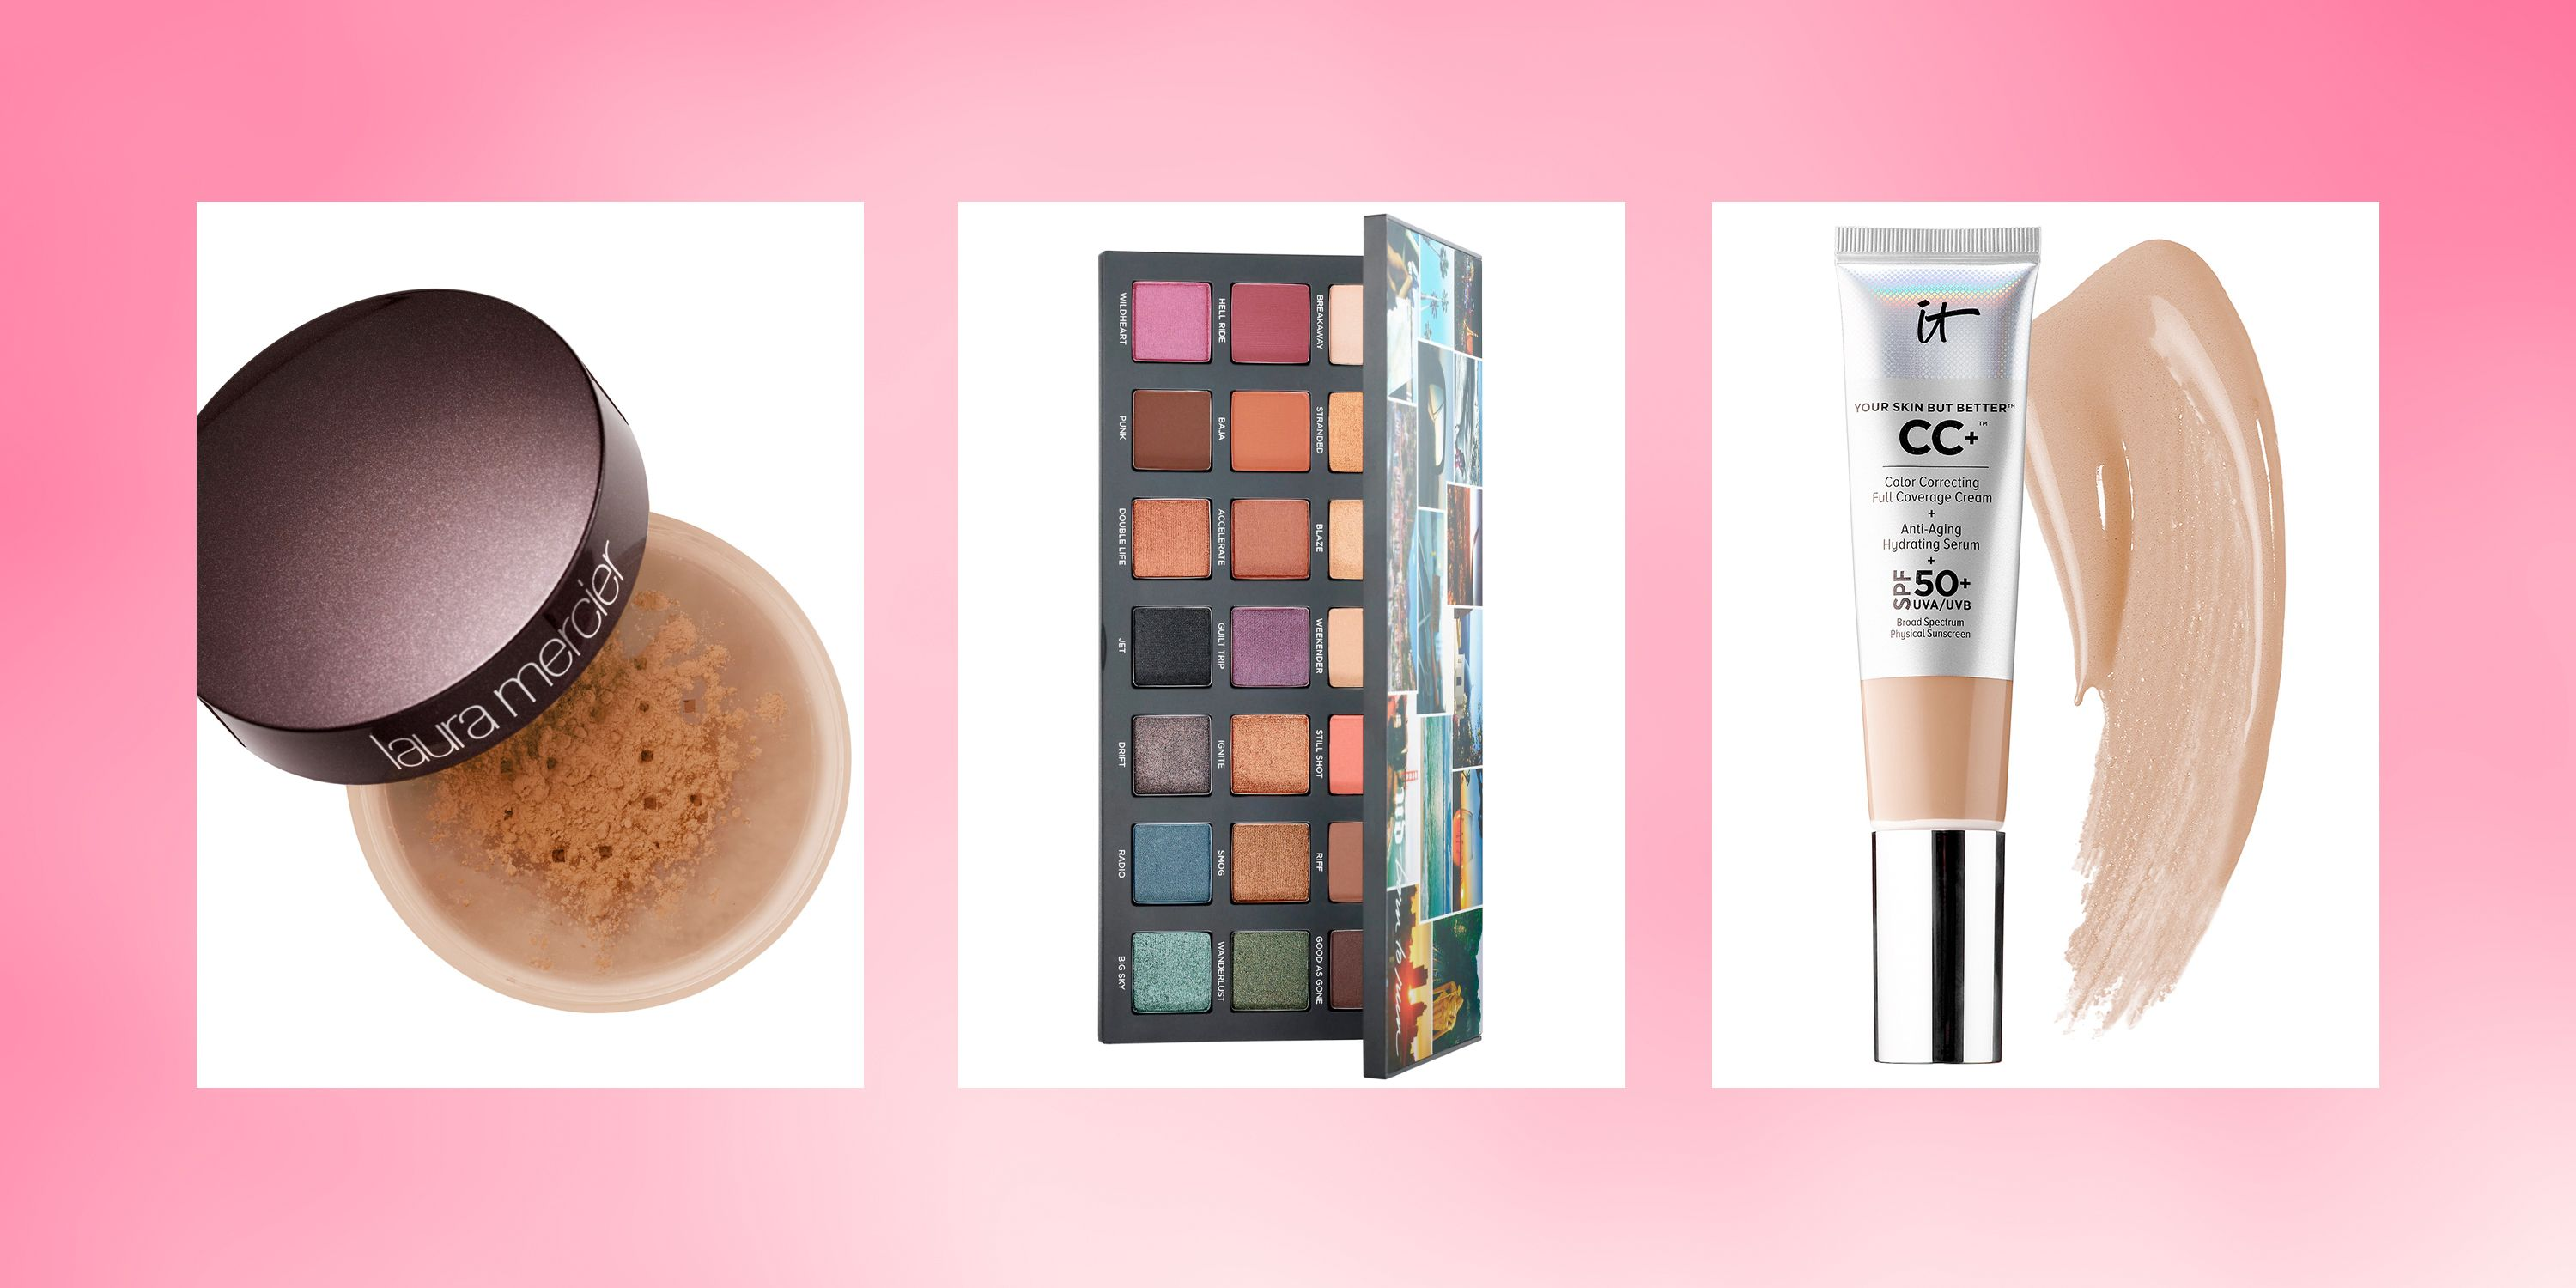 Where to buy Sephora makeup in the UK